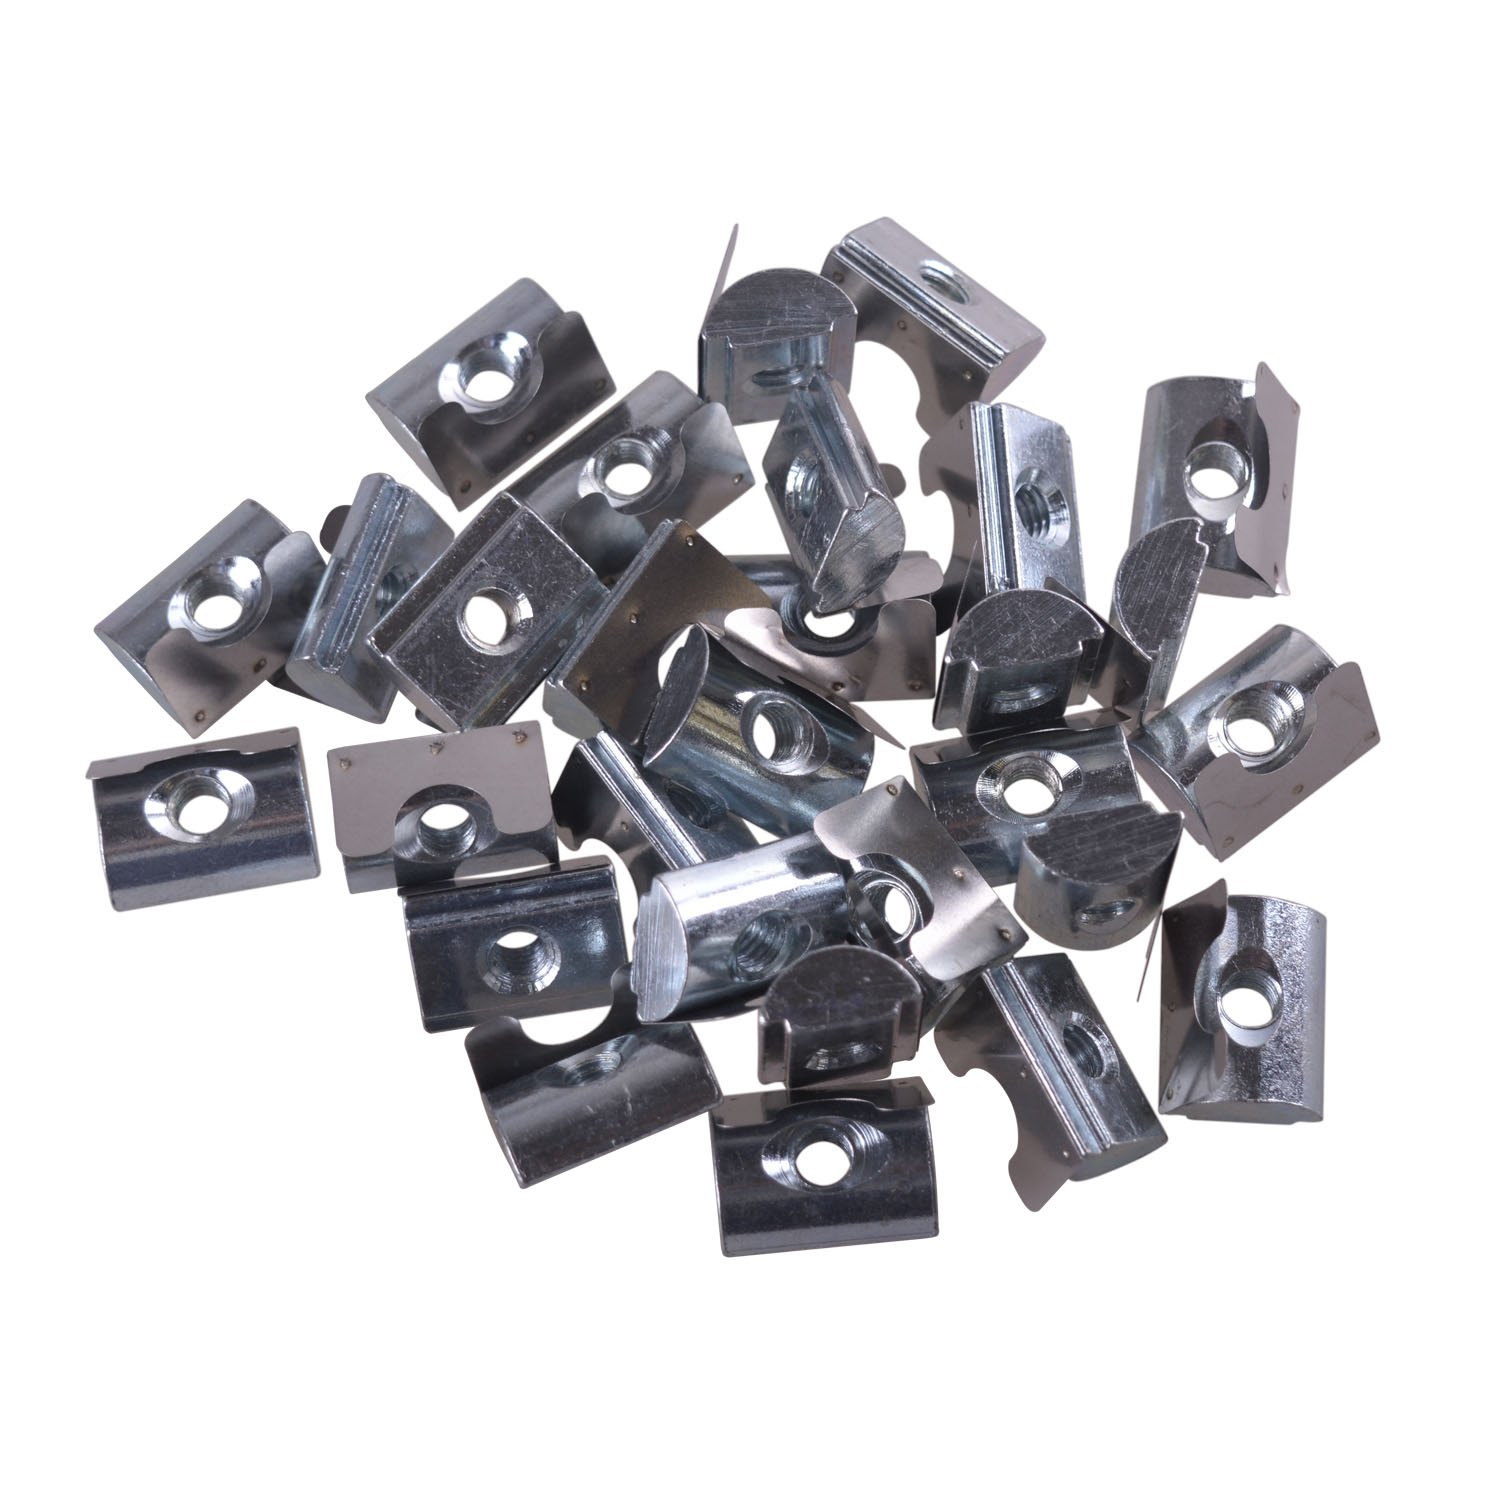 Glvanc, M6 Silver European Standard Carbon Steel Drop in T Nut with Spring Sheet for Aluminum Extrusion with Profile 45 Series 30Pcs